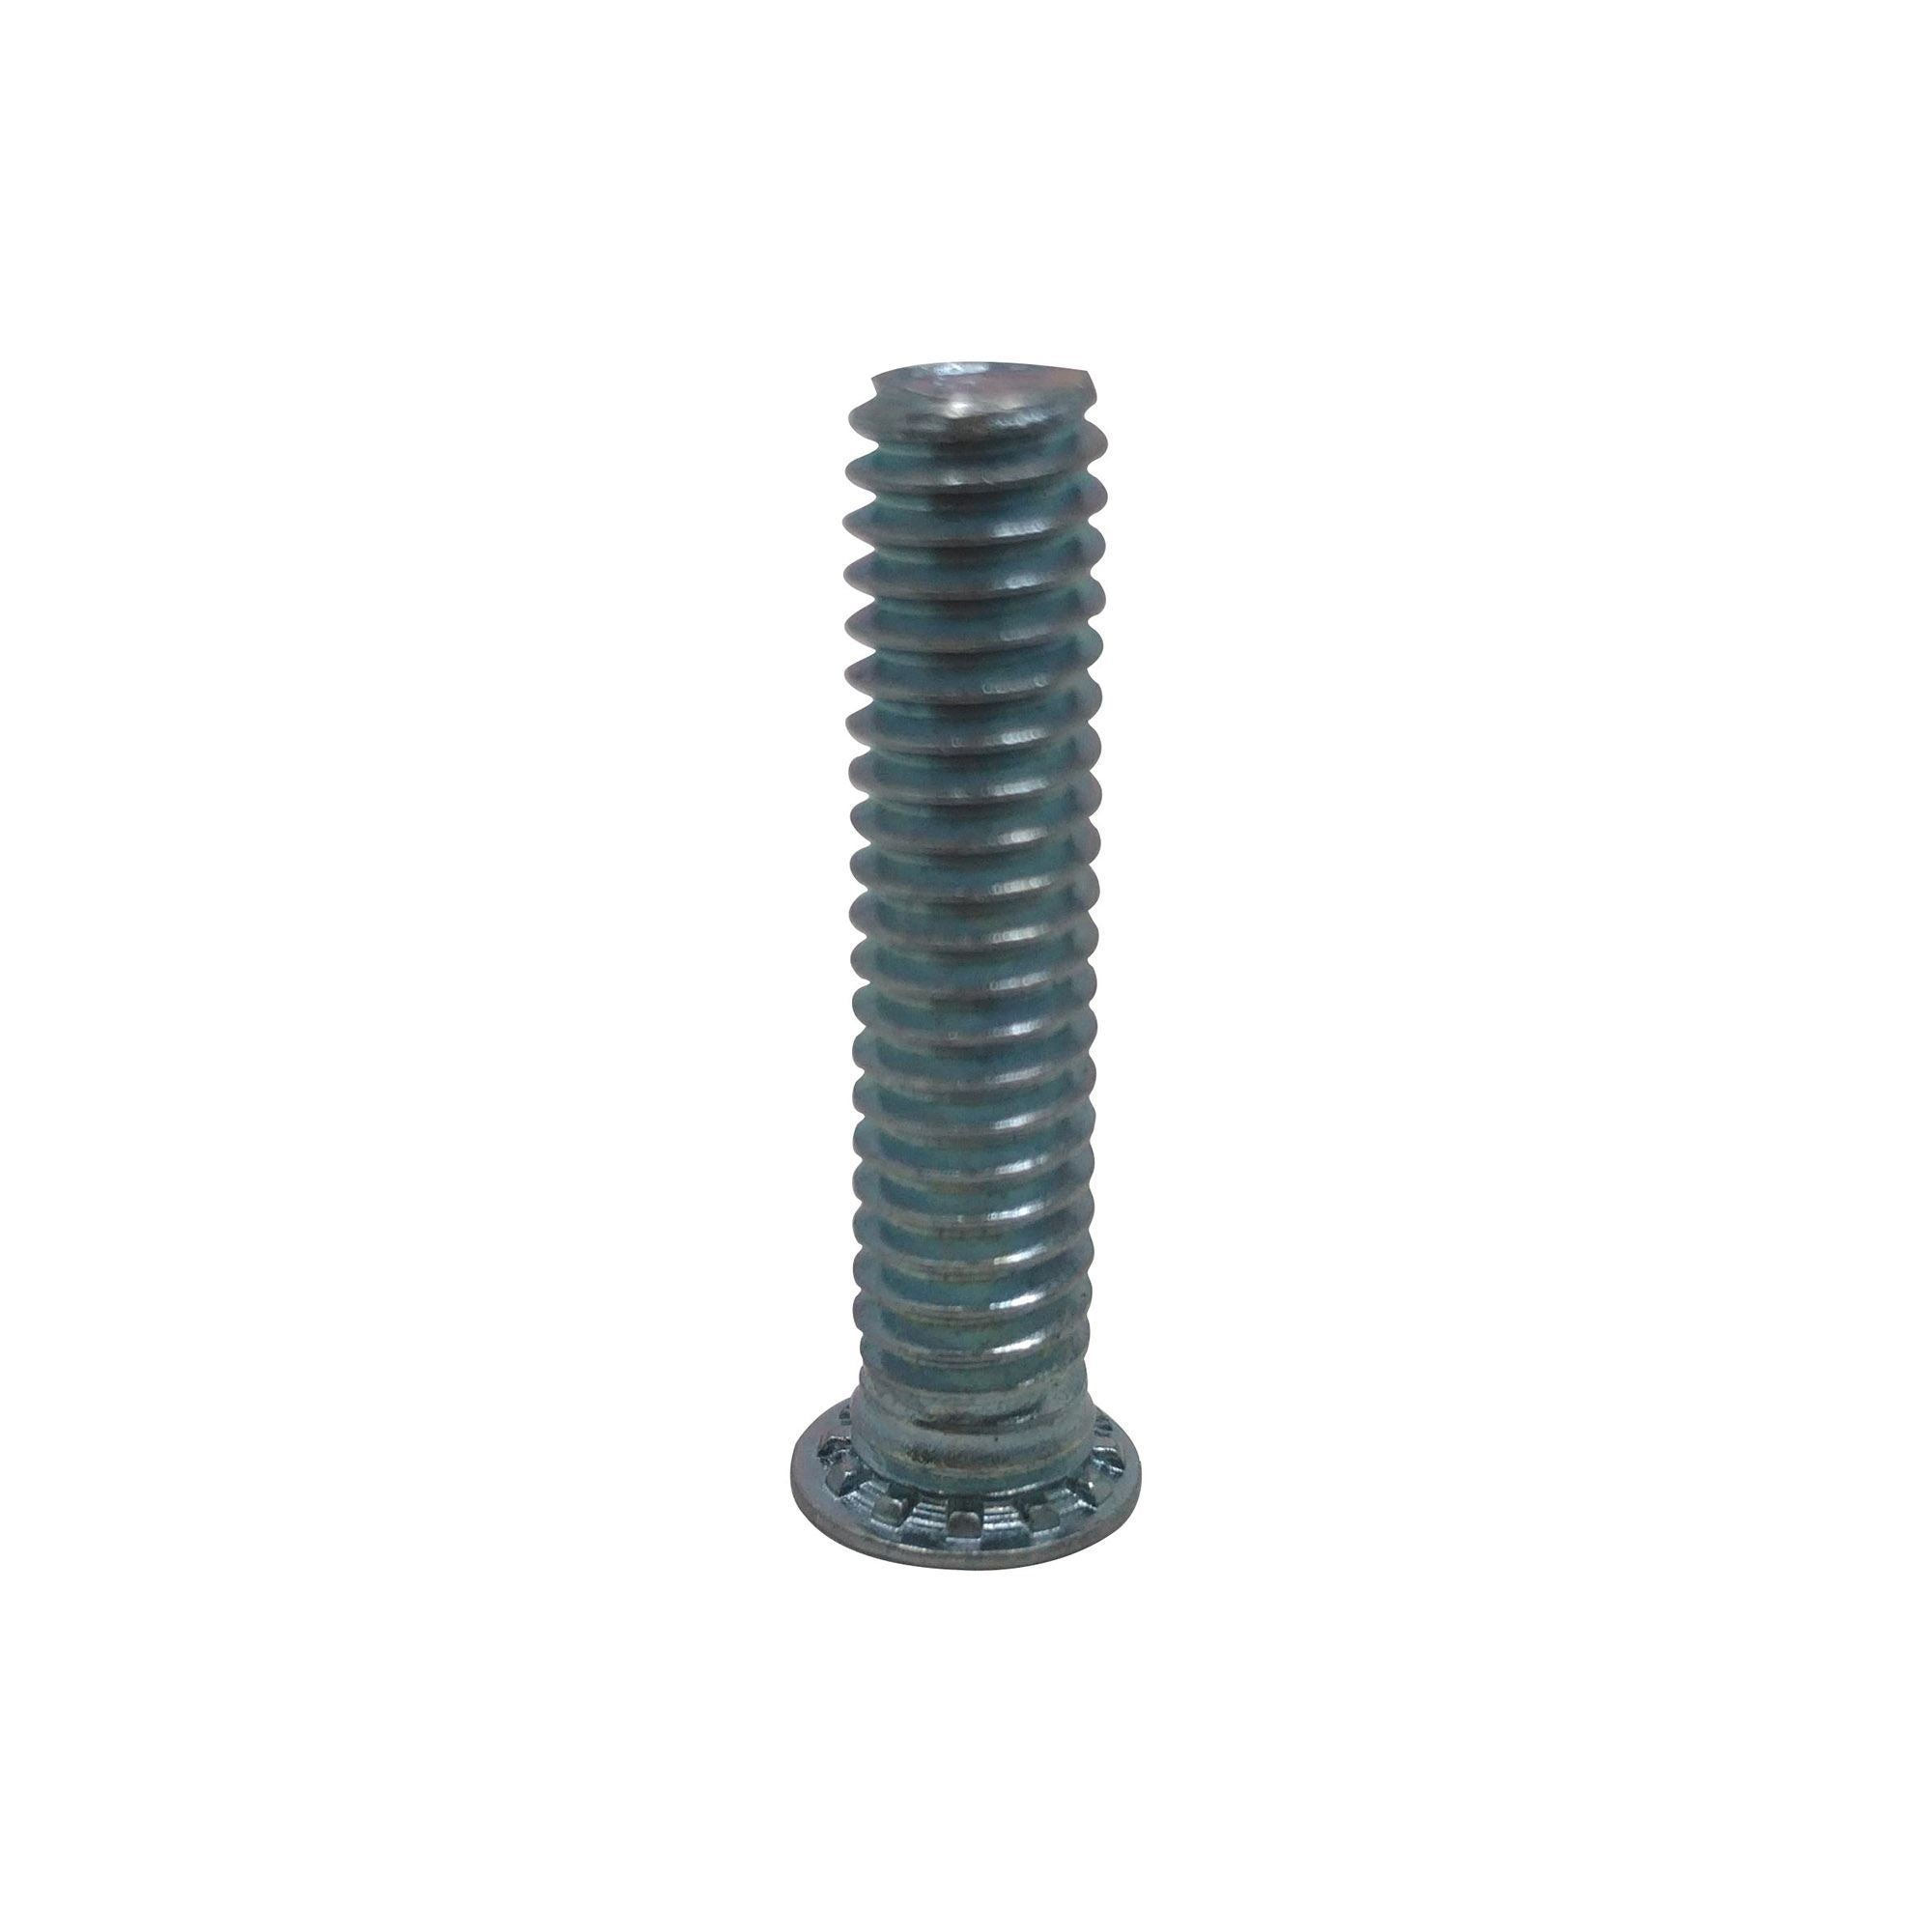 Harman Combustion Blower Mounting Screw, 1-00-53483208